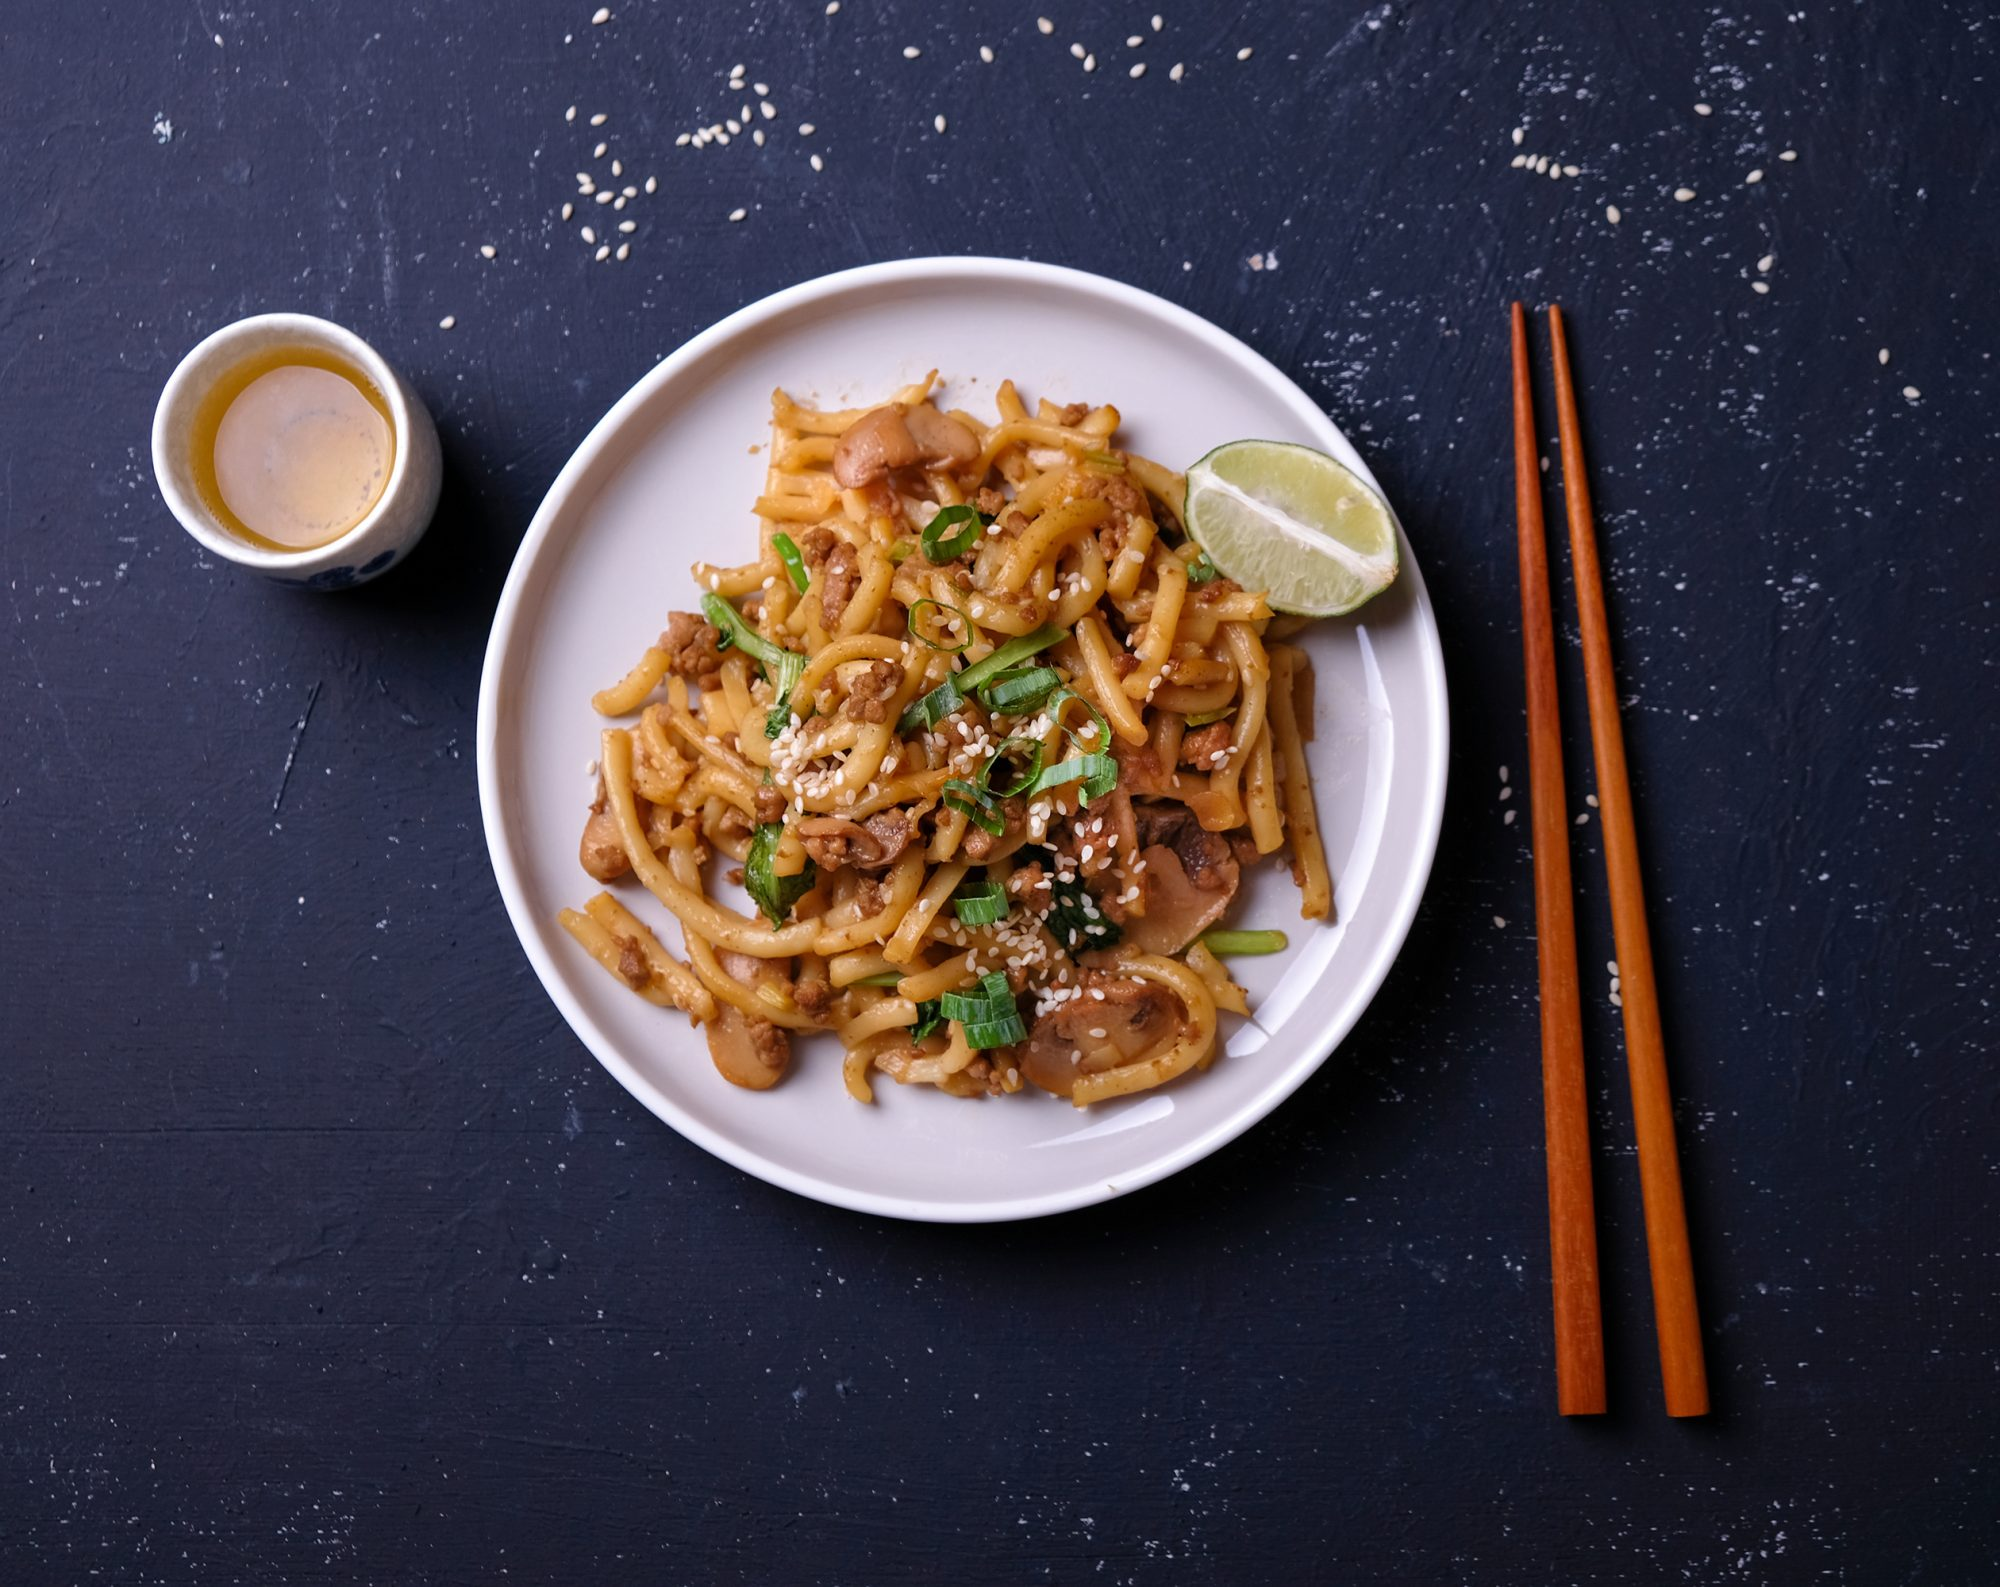 Stir Fry Udon with red chopstick